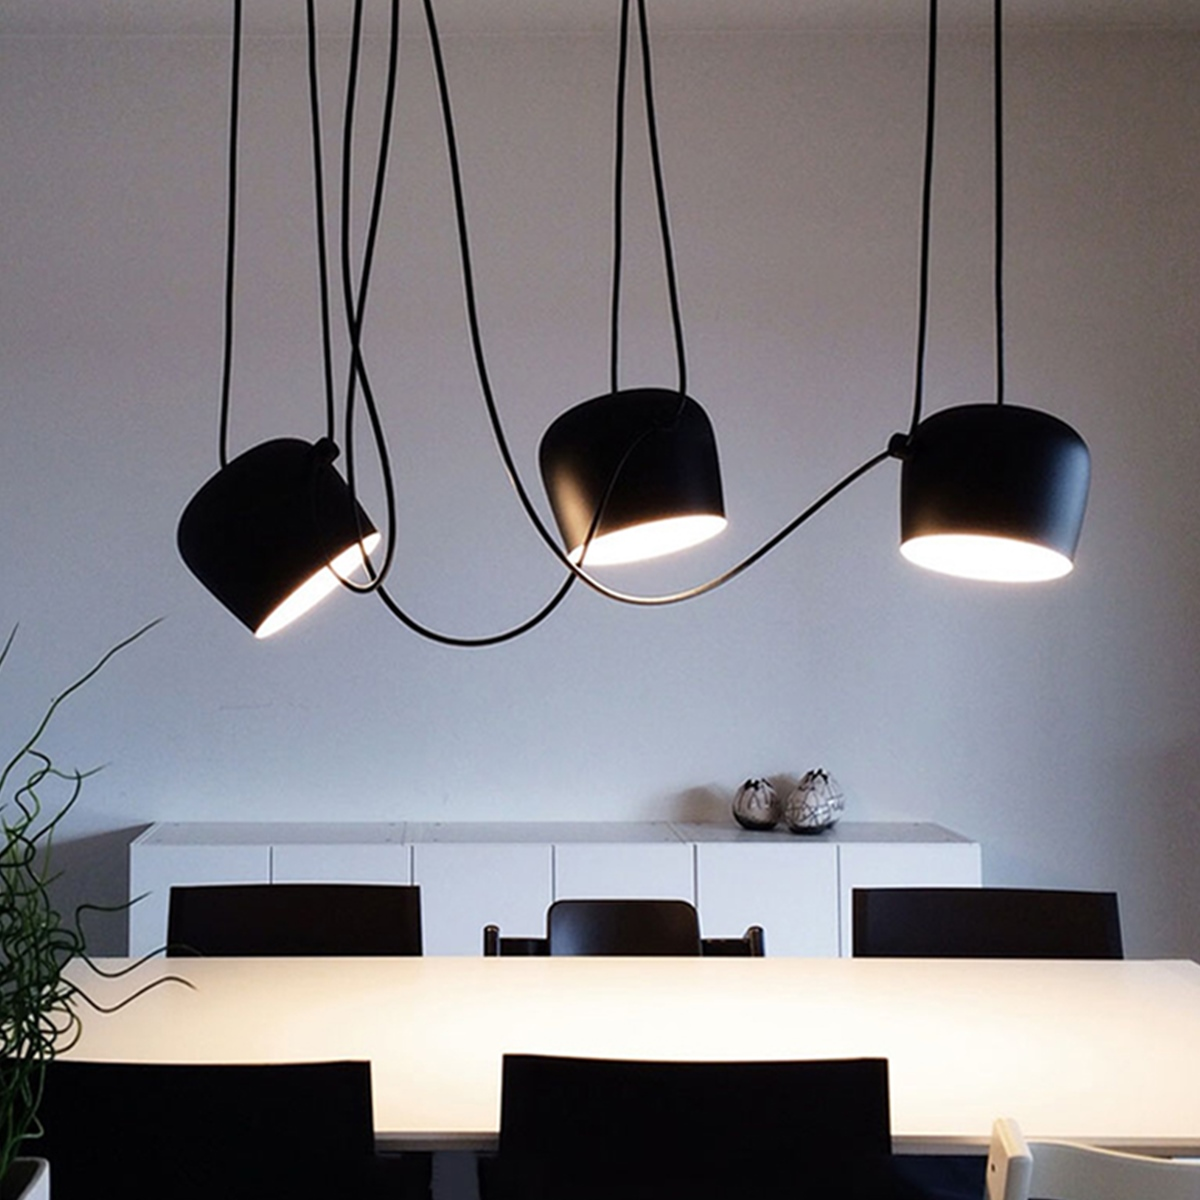 Details About Modern Aim Style 1 3 Light Replica Suspension Lighting Lamp Home Office Decor